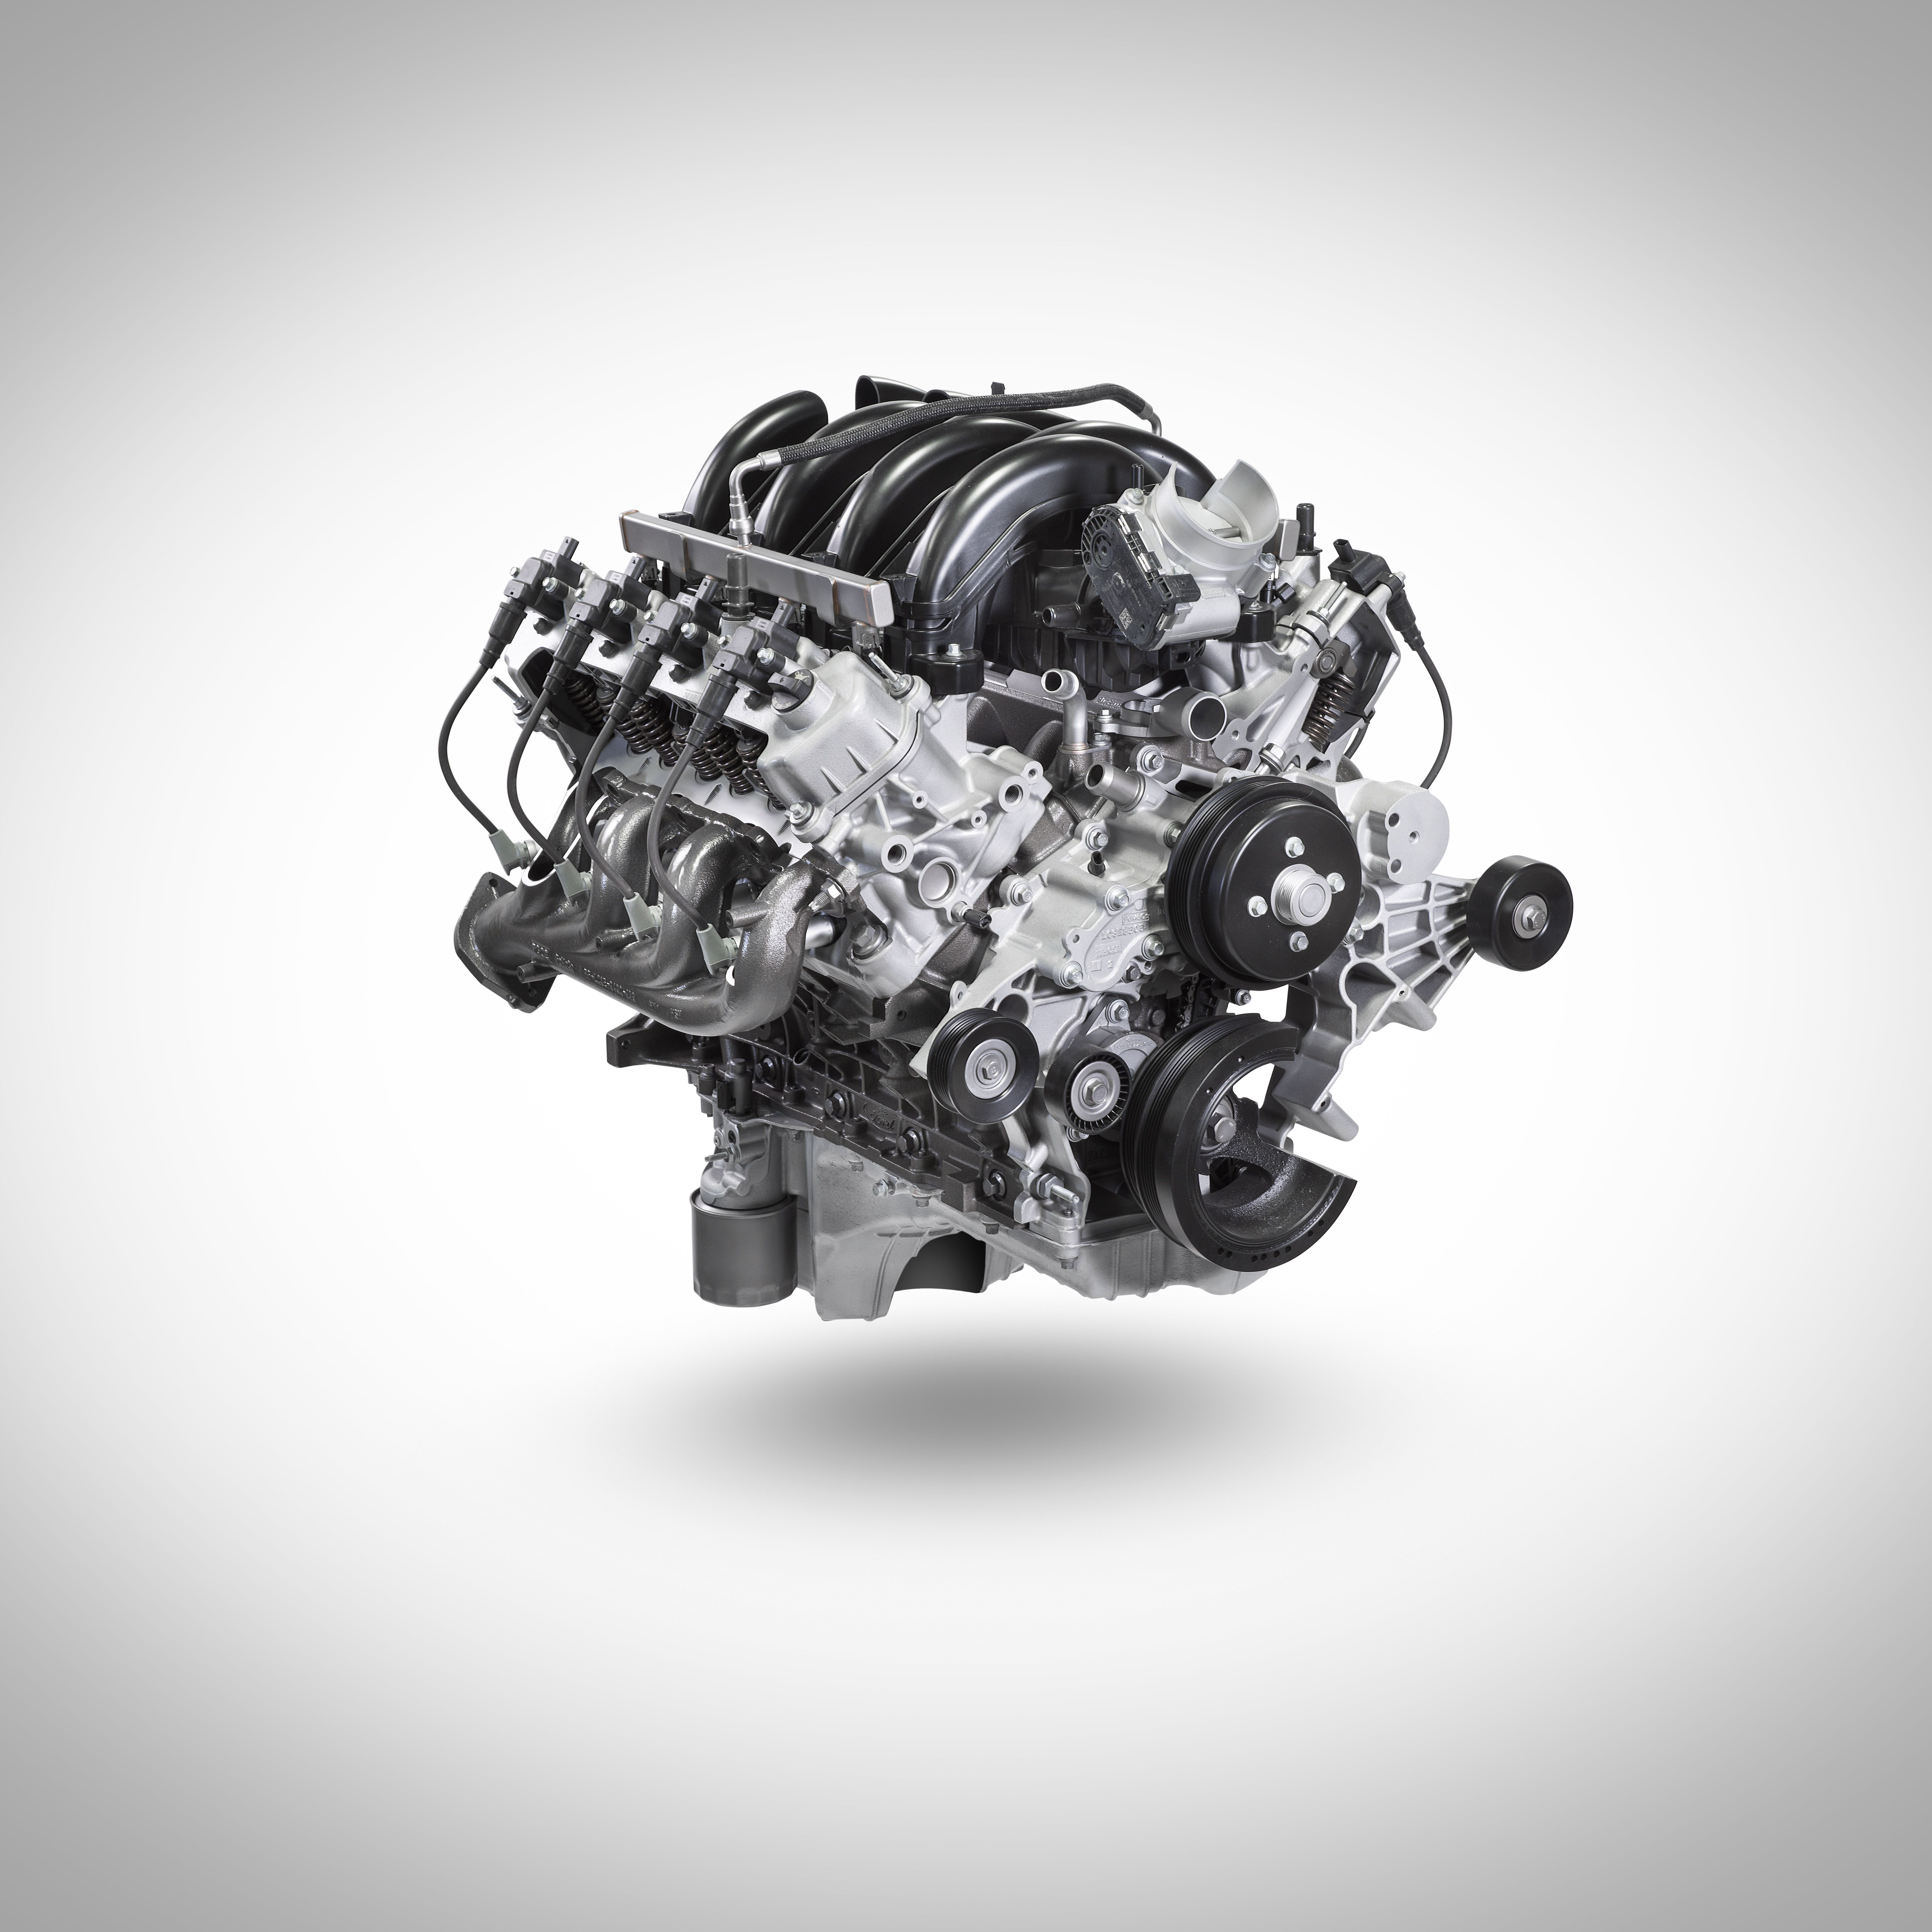 Ford Keeps It Old School With The All New 7 3 Liter Gas V8